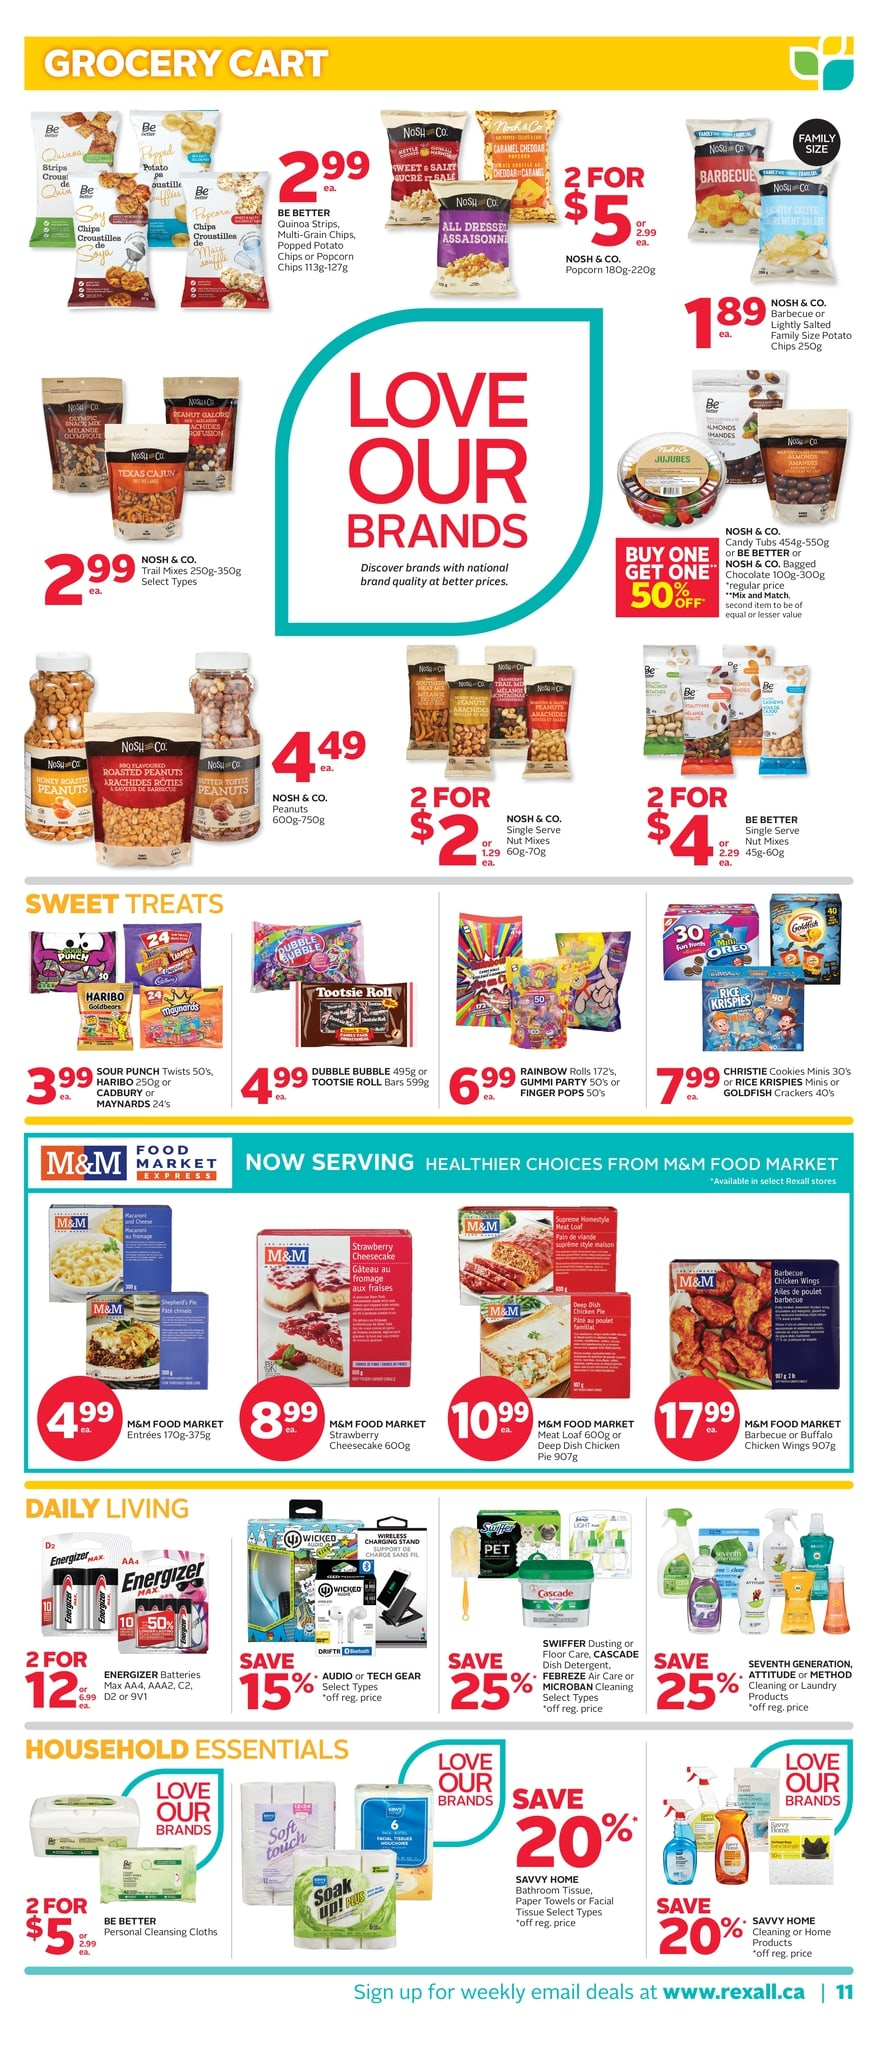 Rexall - Weekly Flyer Specials - Page 15